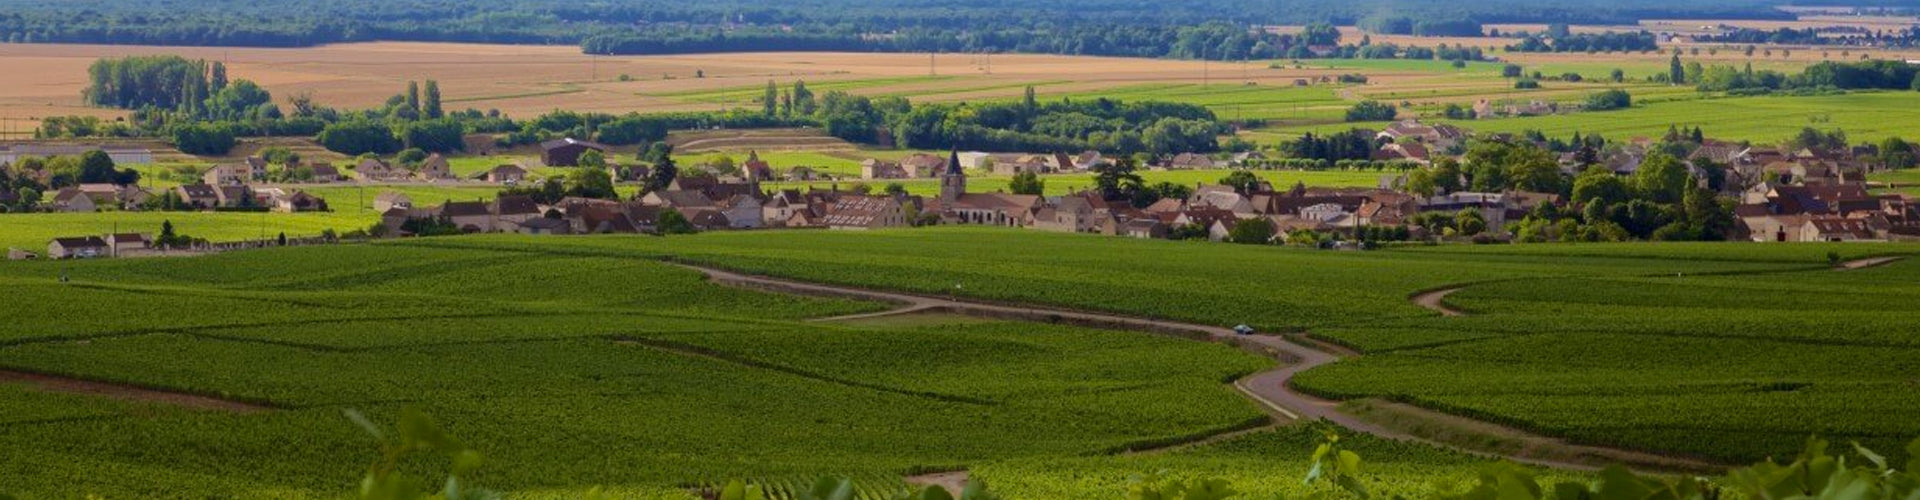 Domaine Tollot-Beaut Vineyards in Chorey-lès-Beaune